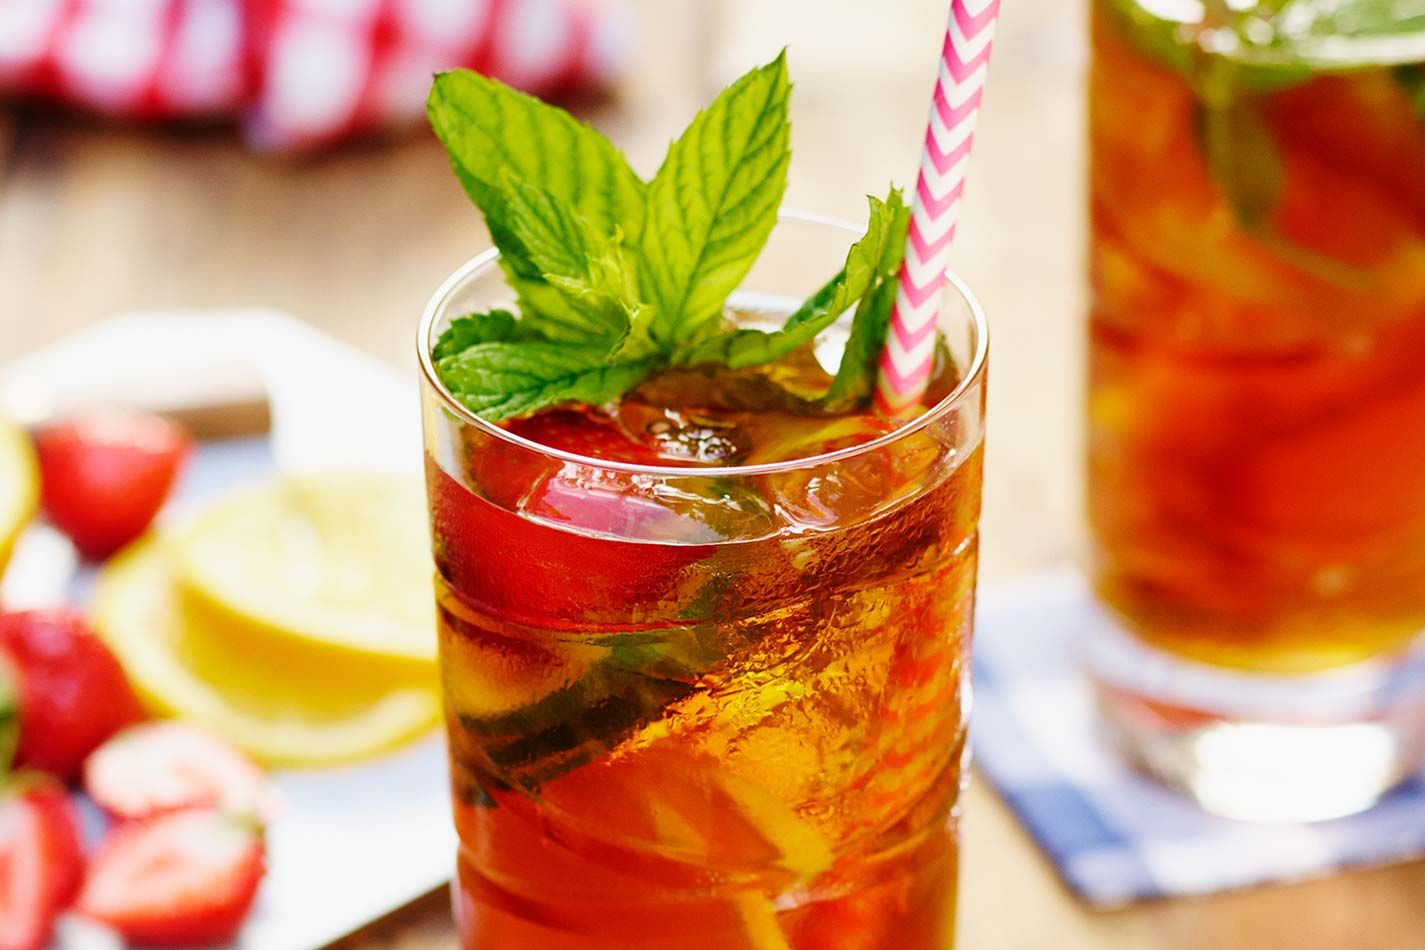 Pimms lemonade drink recipe how to make pimms for Good mixed drink ideas